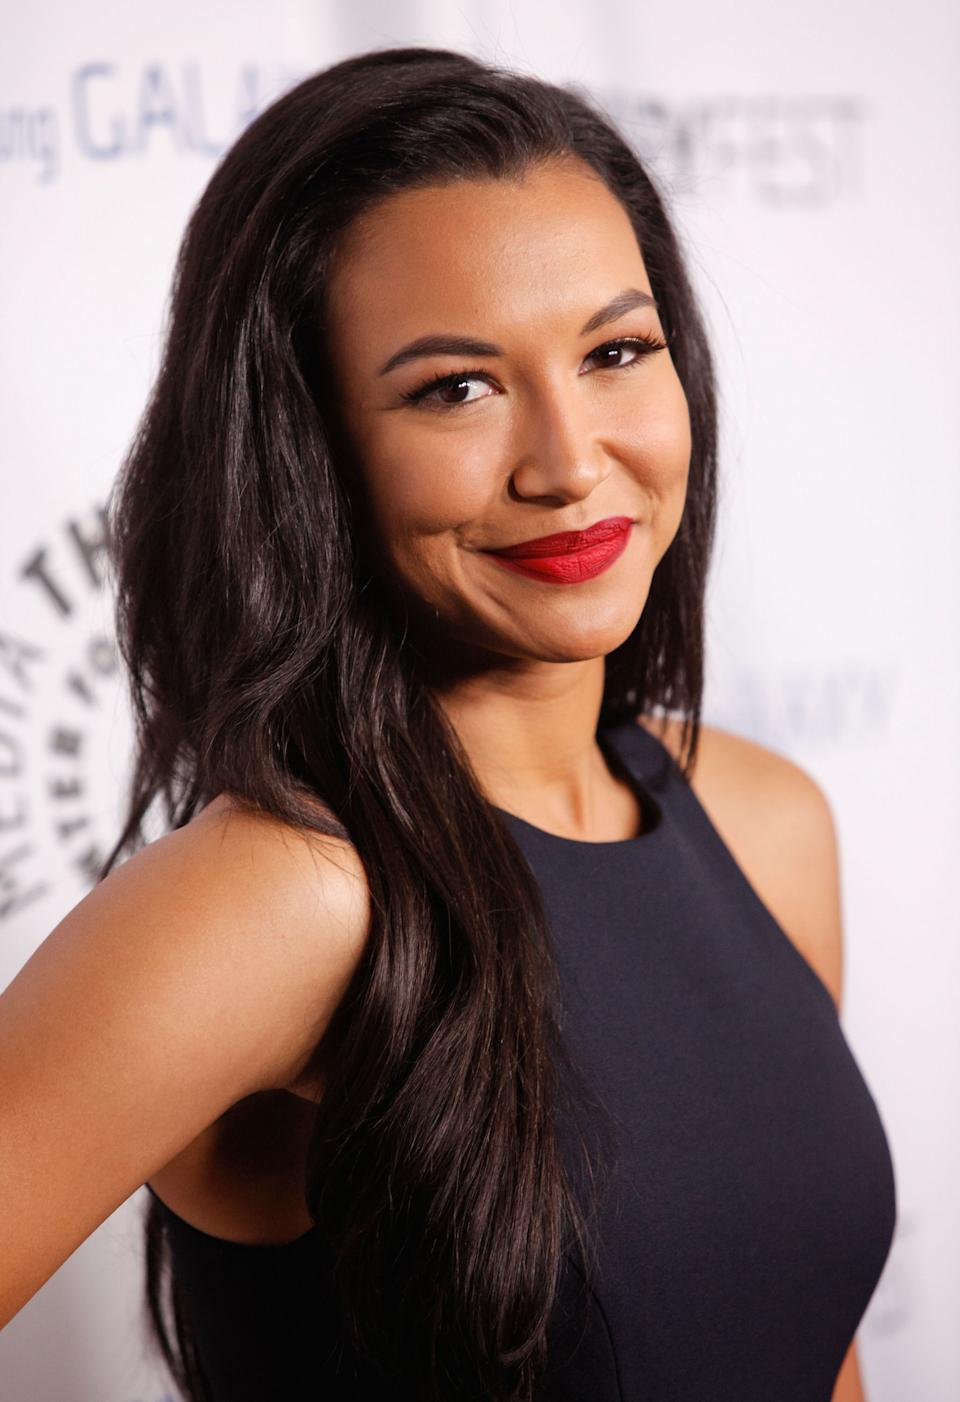 Naya may have been best known as Santana Lopez in Glee, but she also featured in film roles including Mad Families and At The Devil's Door. Photo: Getty